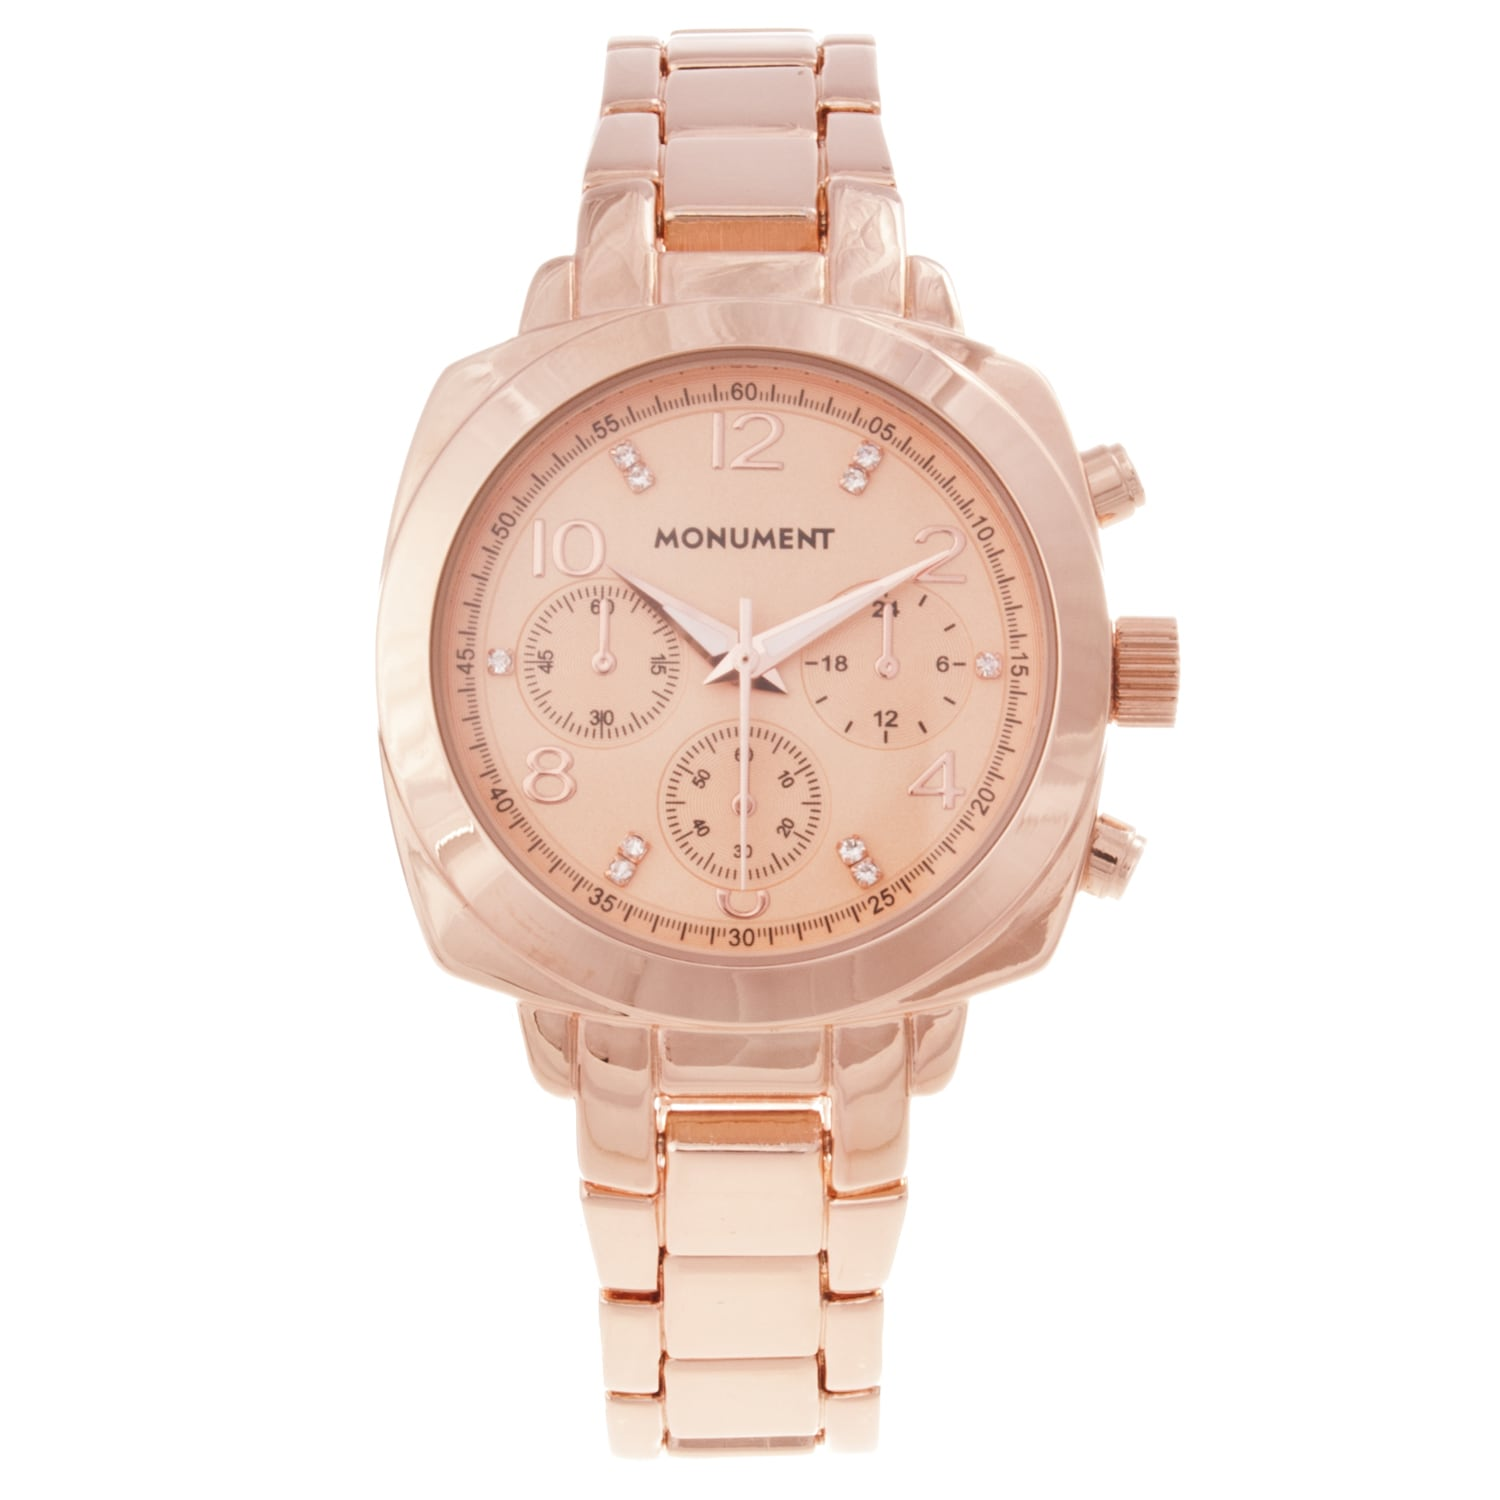 Monument Women's Crystal Rose-goldtone Bracelet Watch